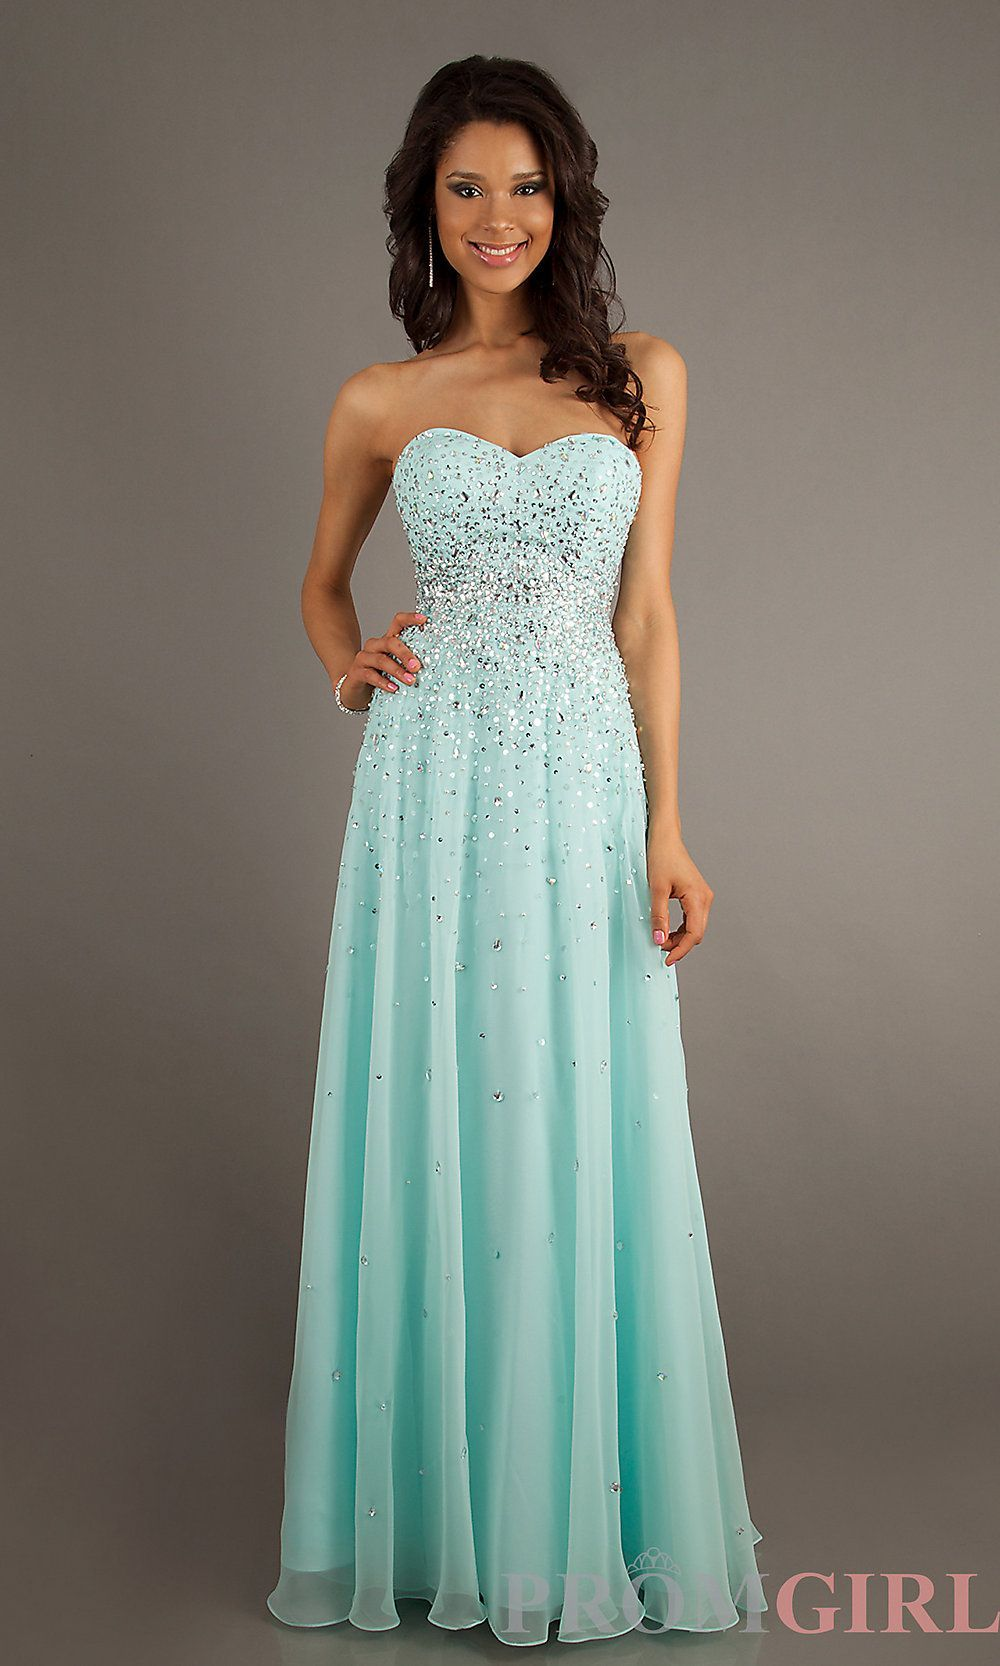 Turquoise is one of my favourite colours iud wear this prom dress